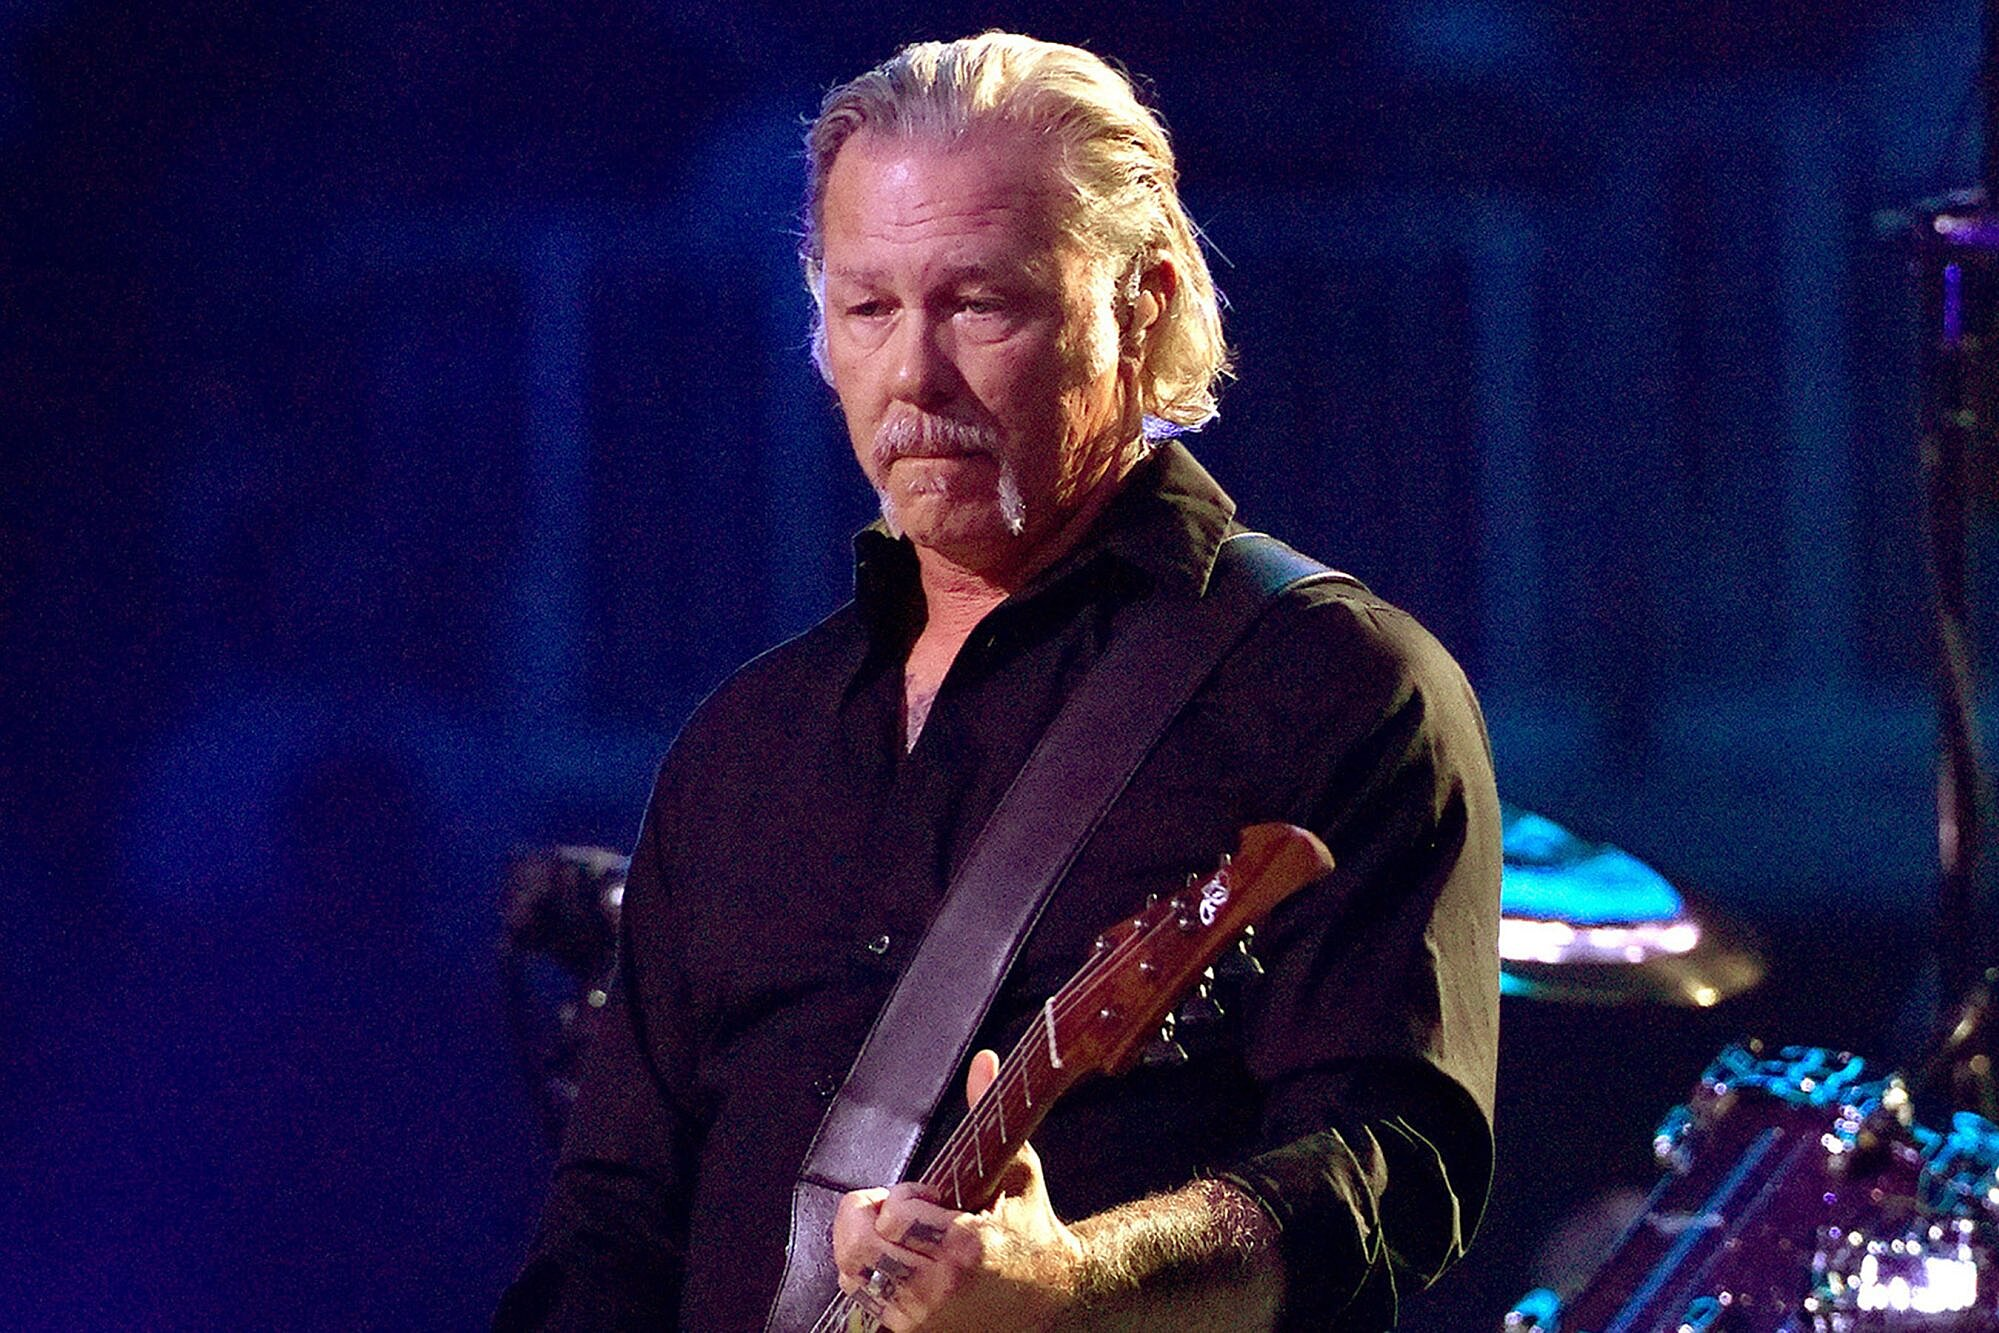 Metallica's James Hetfield Relapses, Enters Rehab, Band Postpones ...